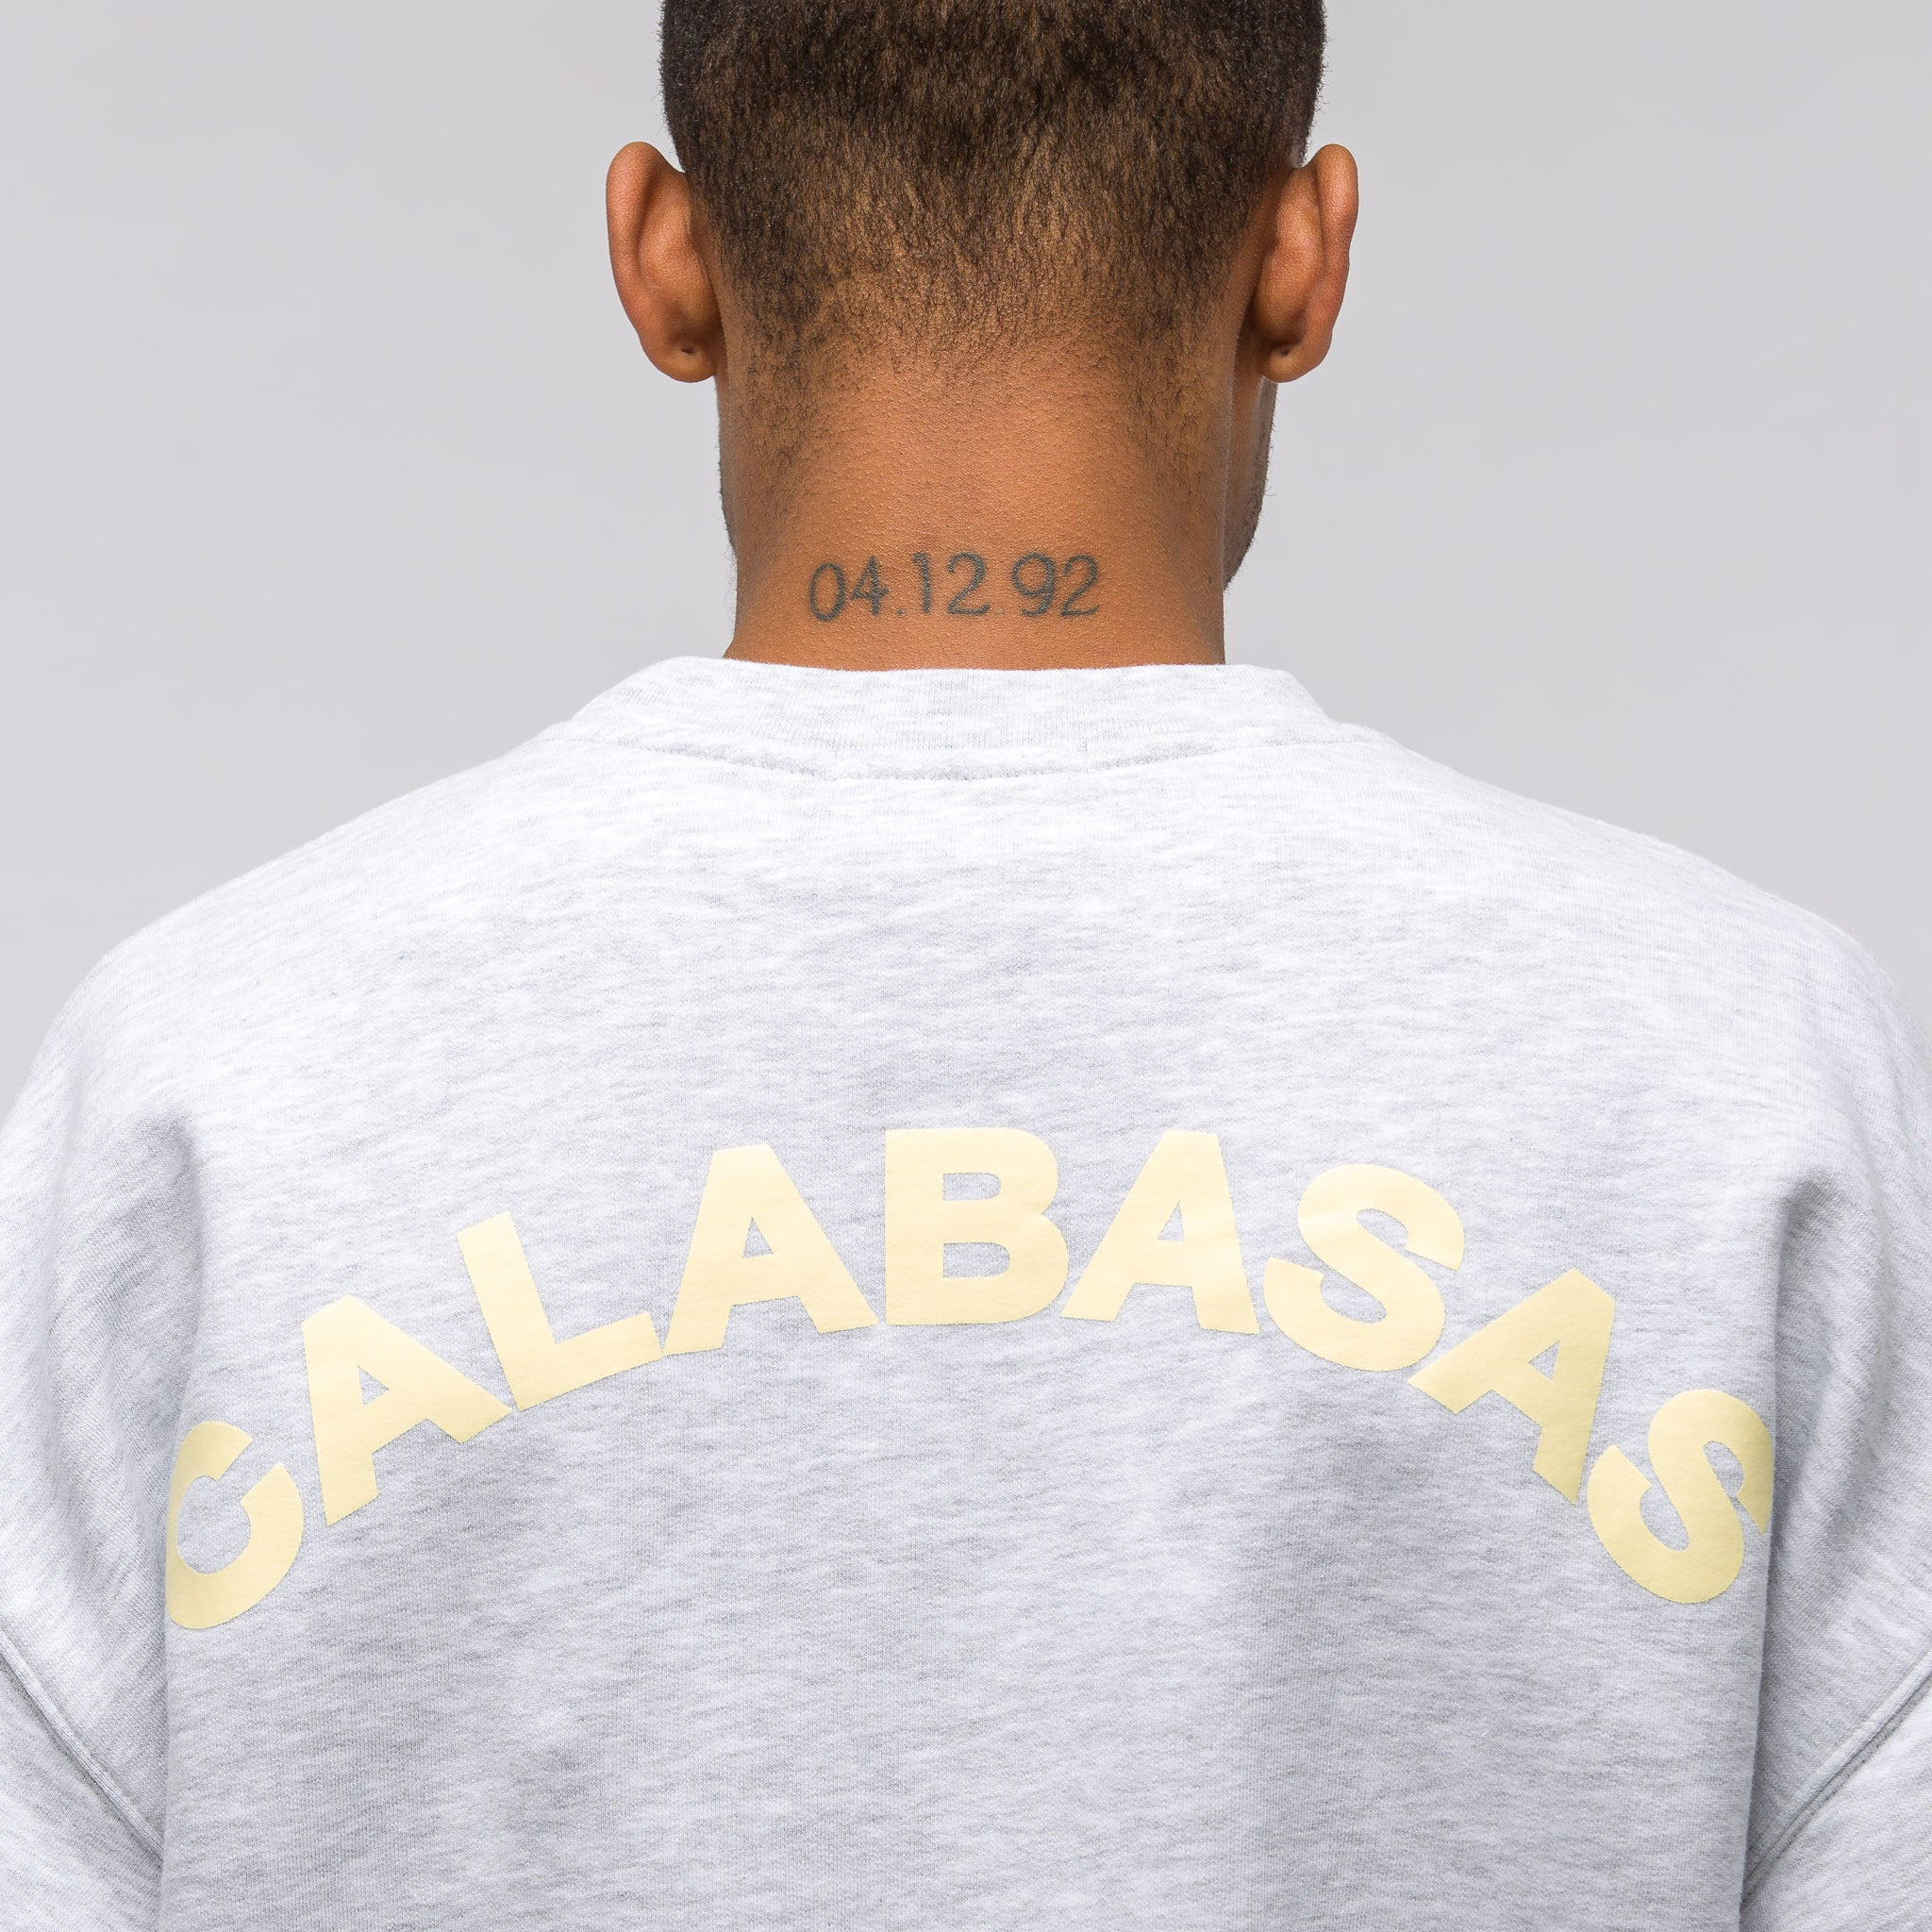 Crew Neck Sweatshirt in Heather Grey